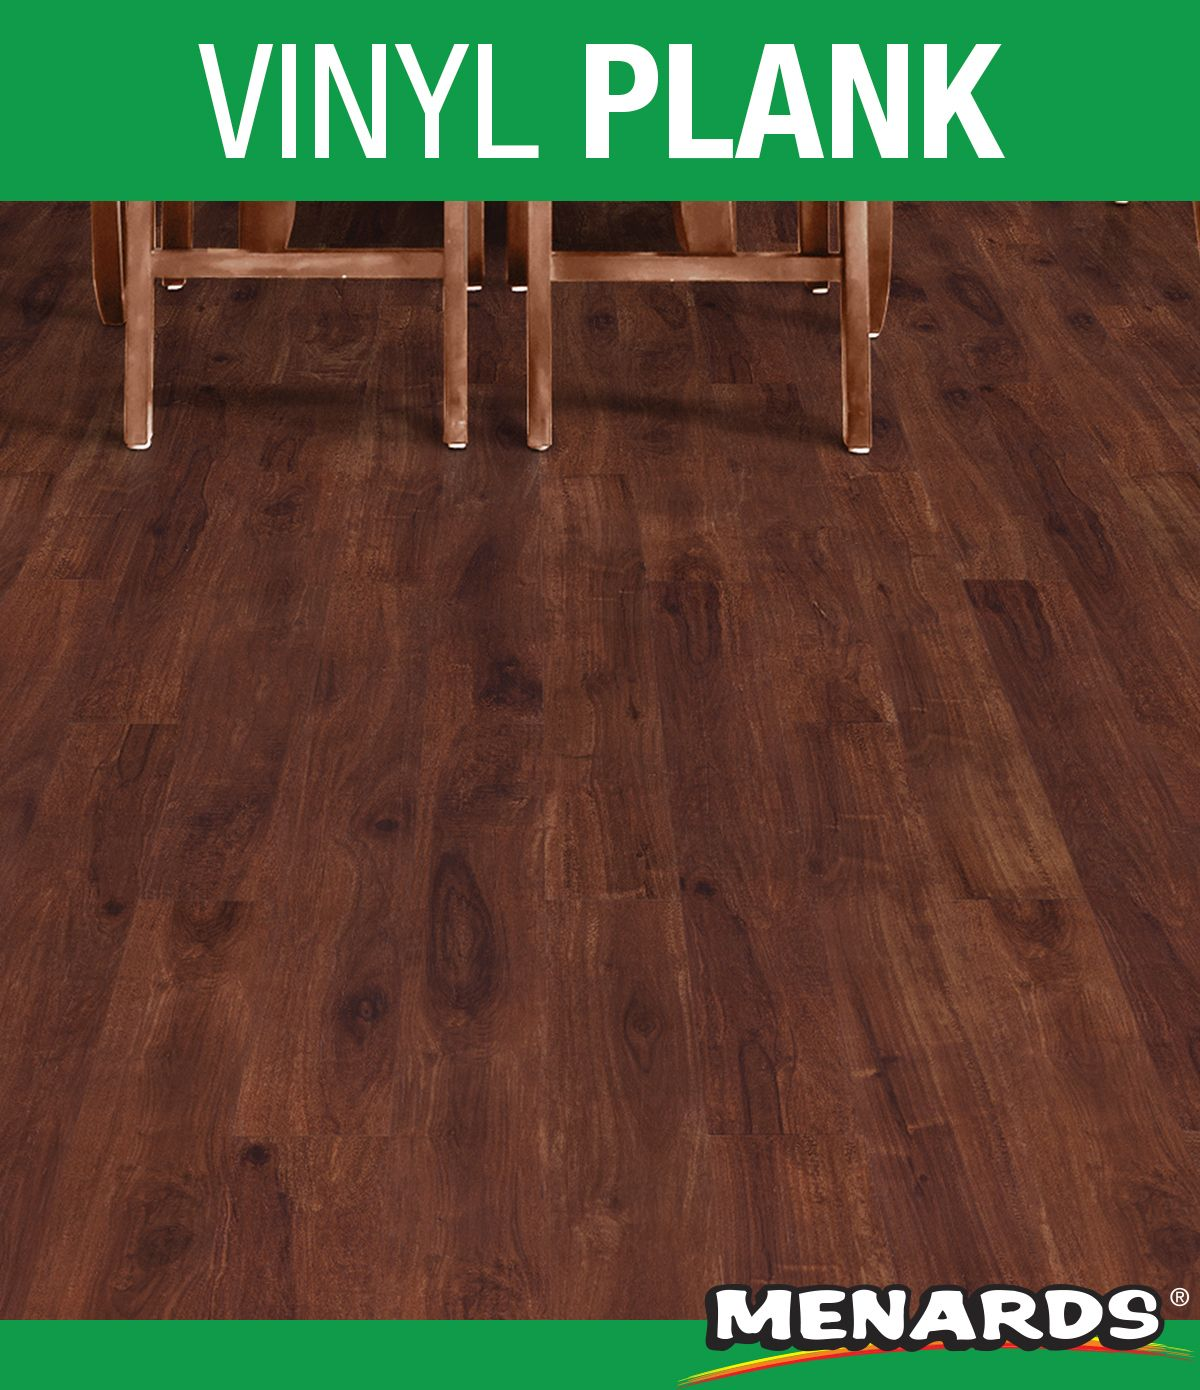 Get new floors the simple way with easytoinstall click